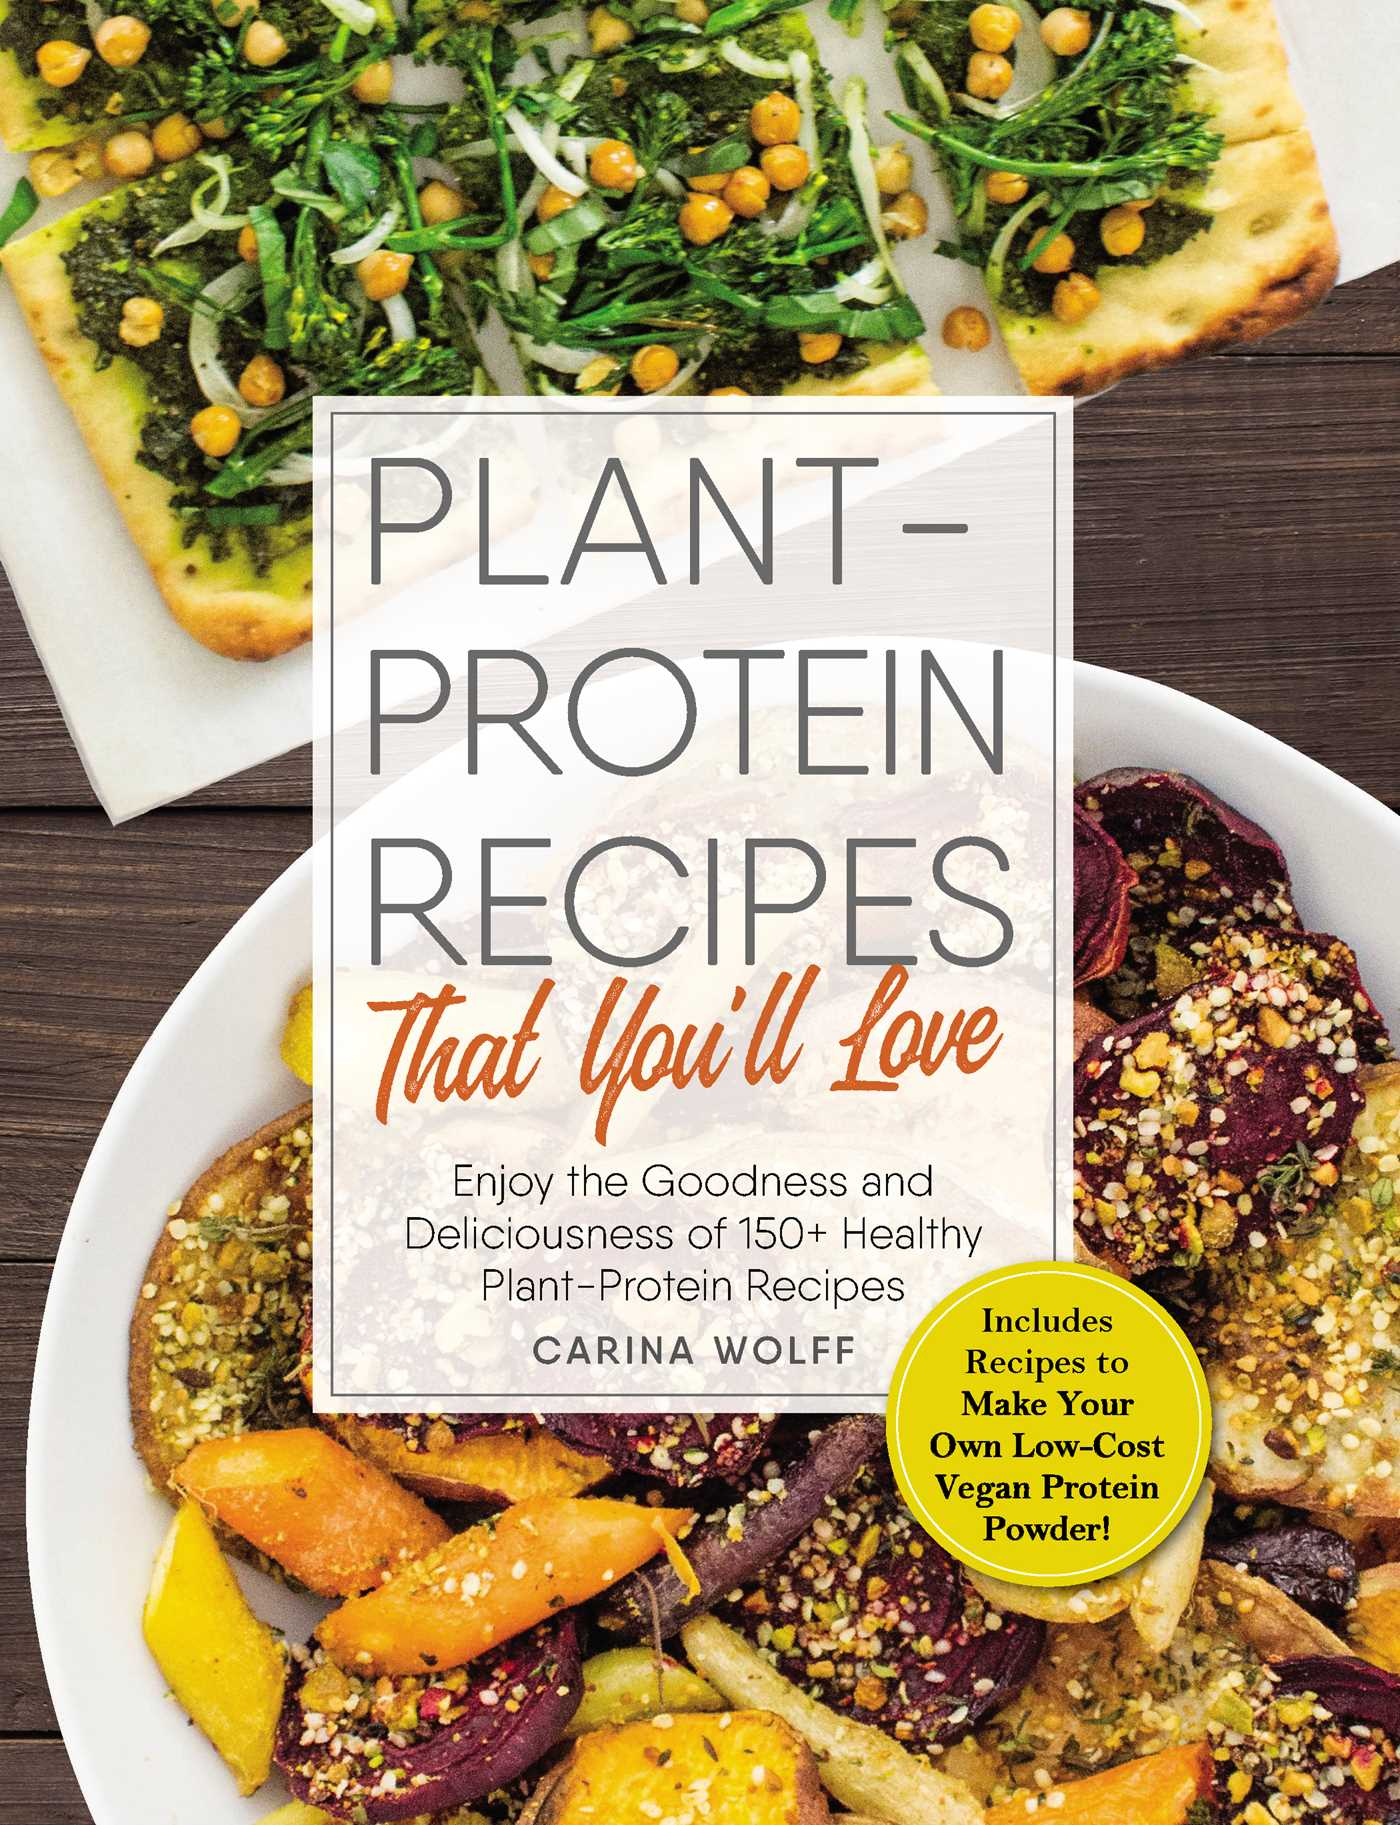 Plant protein recipes that you ll love 9781507204535 hr